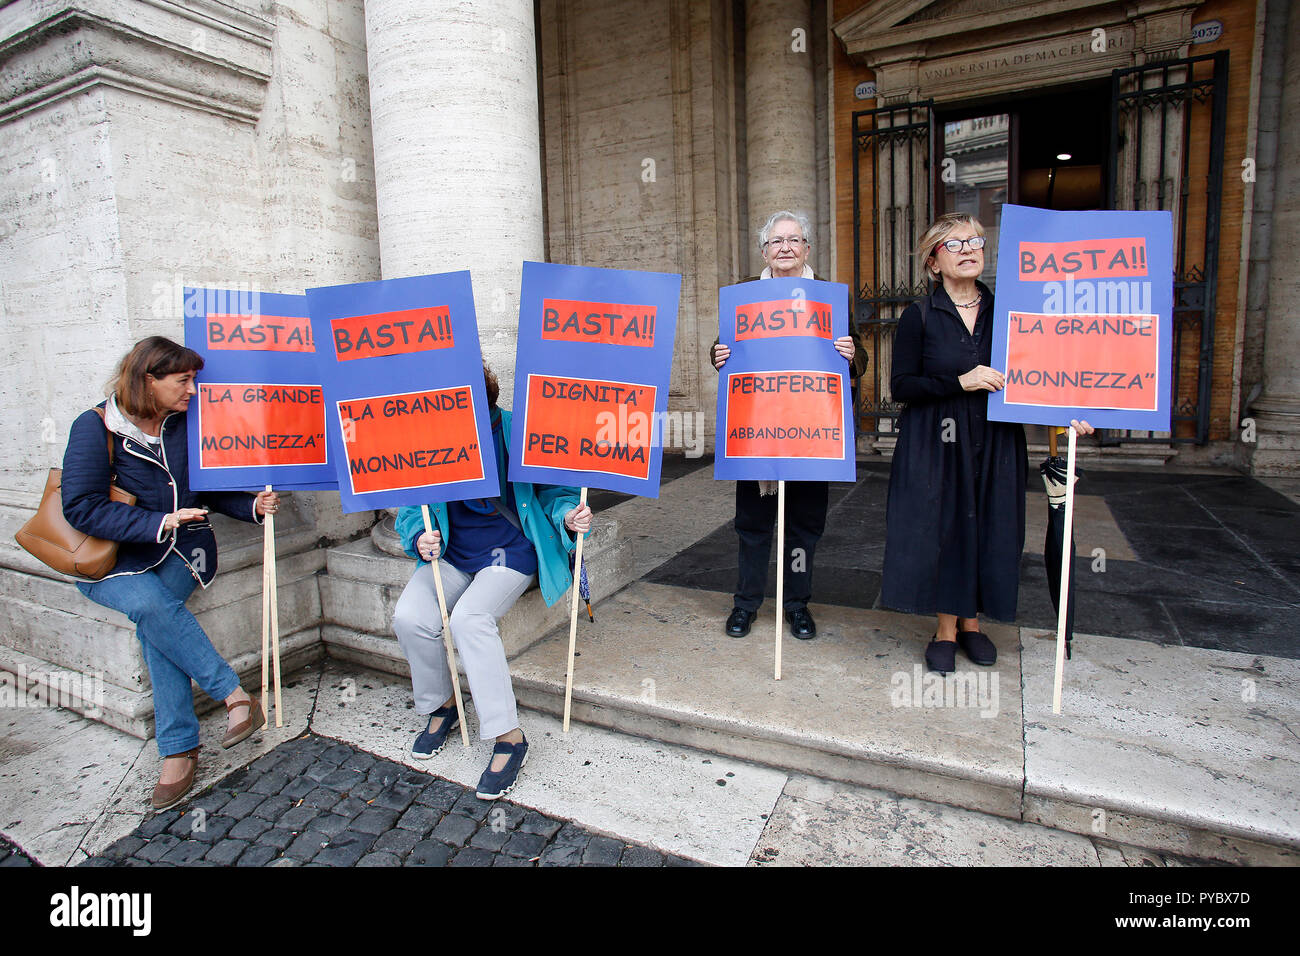 Rome, Italy. 27th Oct, 2018. Cartelli banners Rome October 27th 2018. Campidoglio Square. Demonstration of roman citizens agains the mayor and against the deterioration and the huge problems that have been afflicting Rome during the last months, like garbage, carelessness and huge and dangerous holes in the streets. The sit-in was organized by 6 women that created the movement 'Rome says Stop'. Foto Samantha Zucchi Insidefoto Credit: insidefoto srl/Alamy Live News - Stock Image